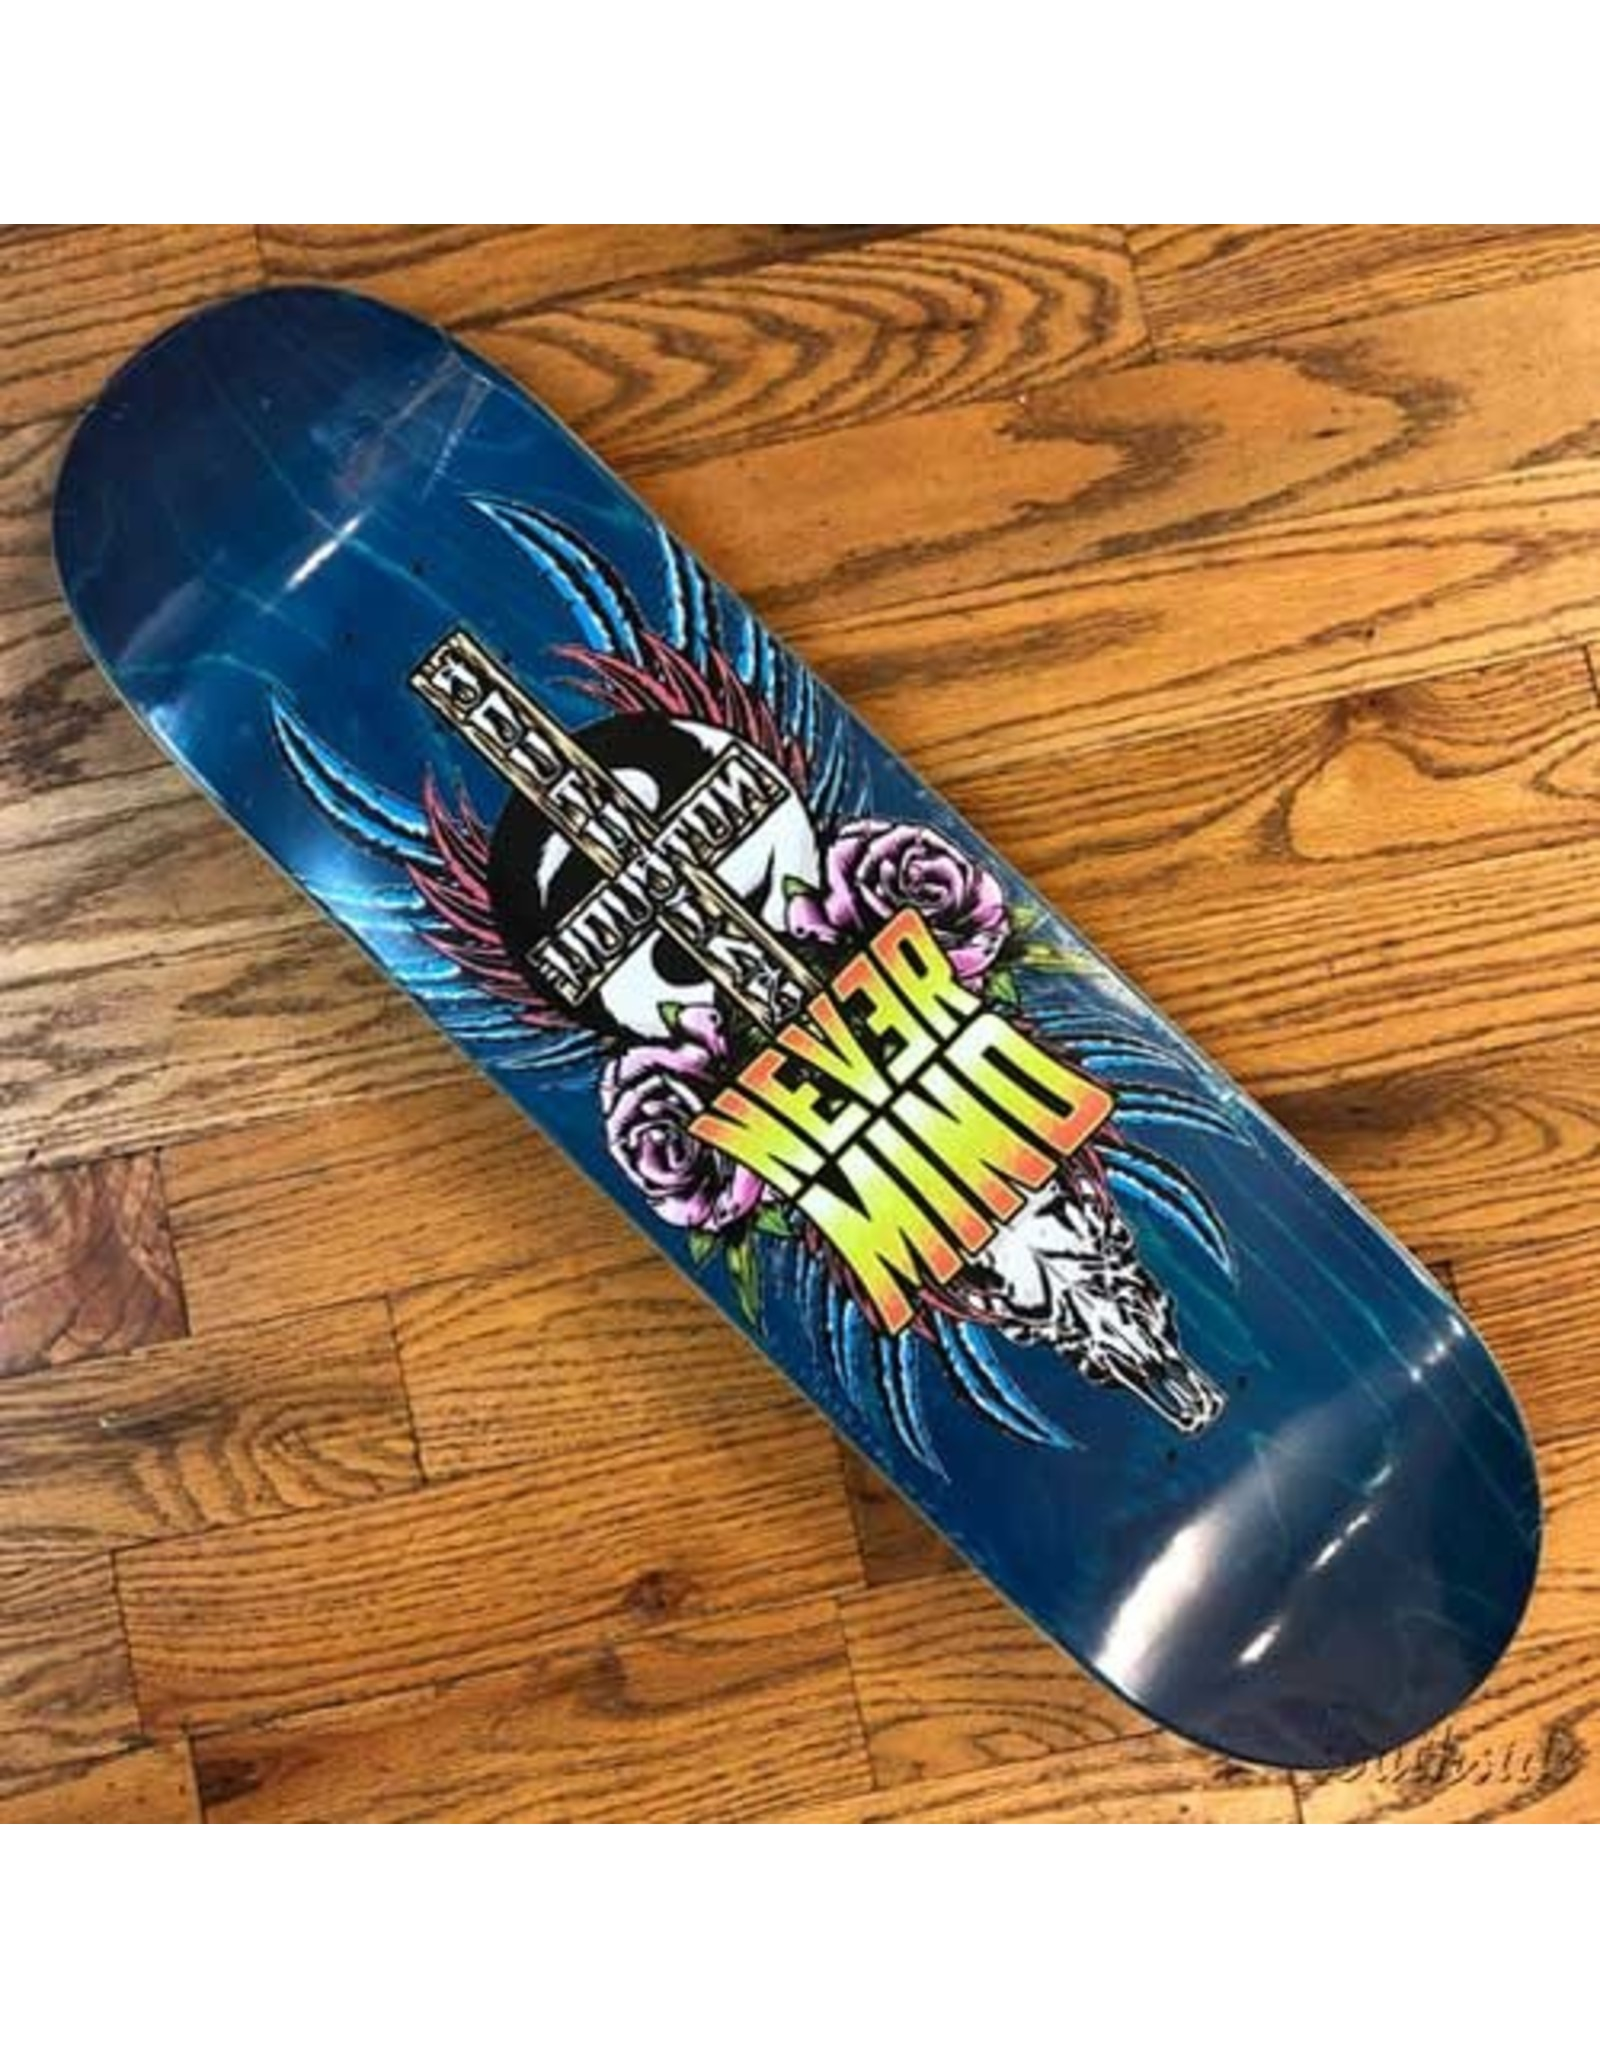 Southside Southside Nevermind Skateboards Deck 8x31.9 Pink Flowers Various Stained Veneer